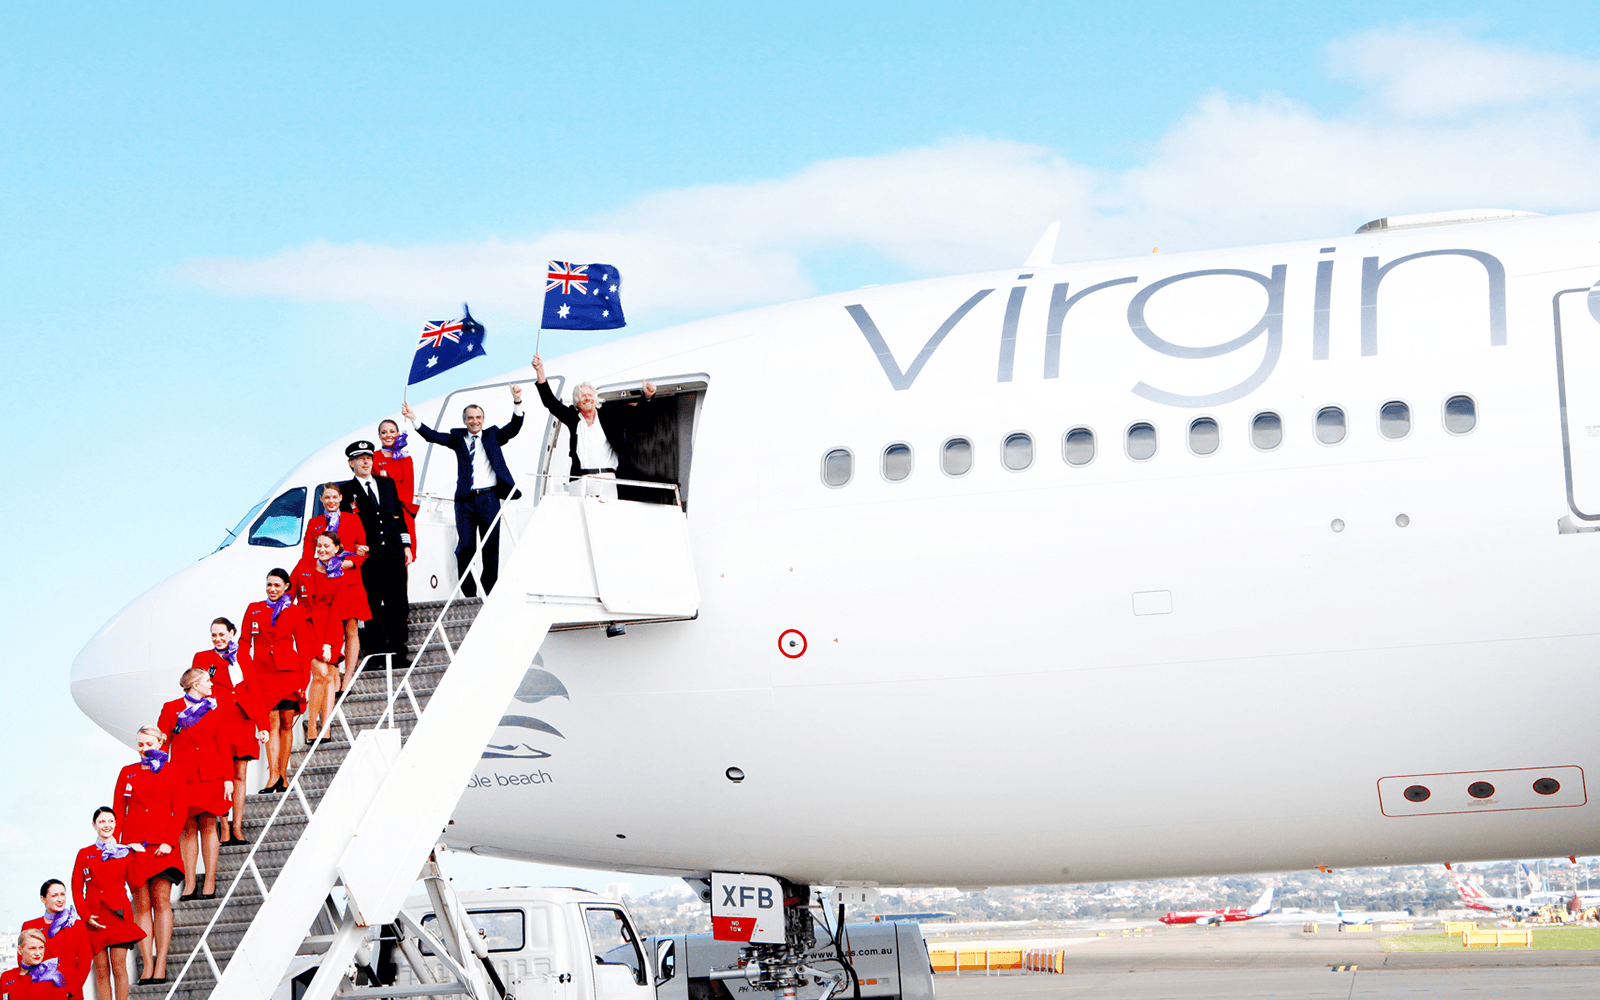 Richard Branson and Virgin Australia employees fly the Australian flag on the steps of a Virgin Australia aeroplane